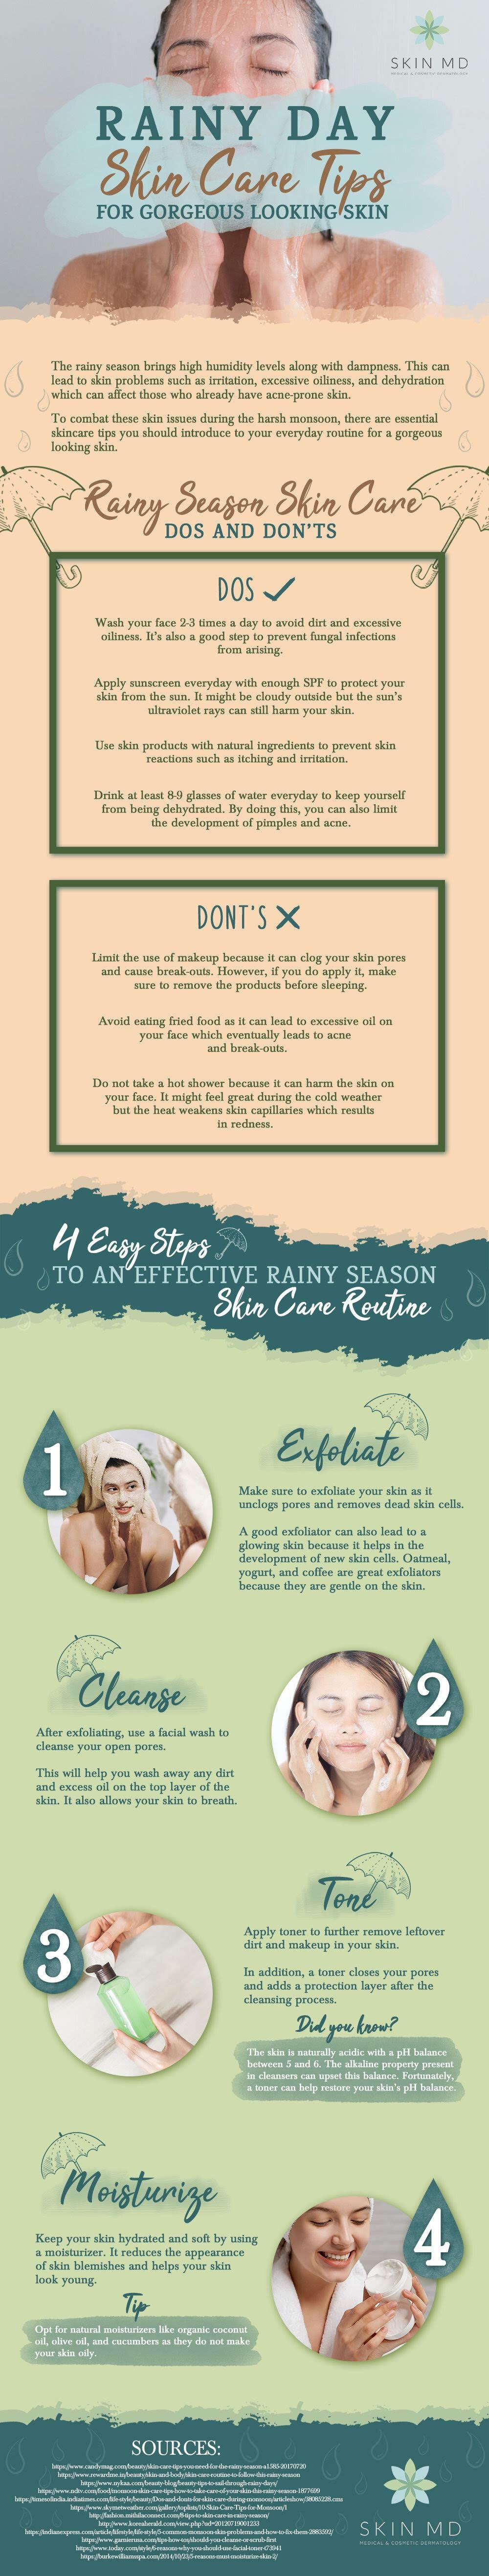 Rainy Day Skin Care Tips For Gorgeous Looking Skin #Infographic